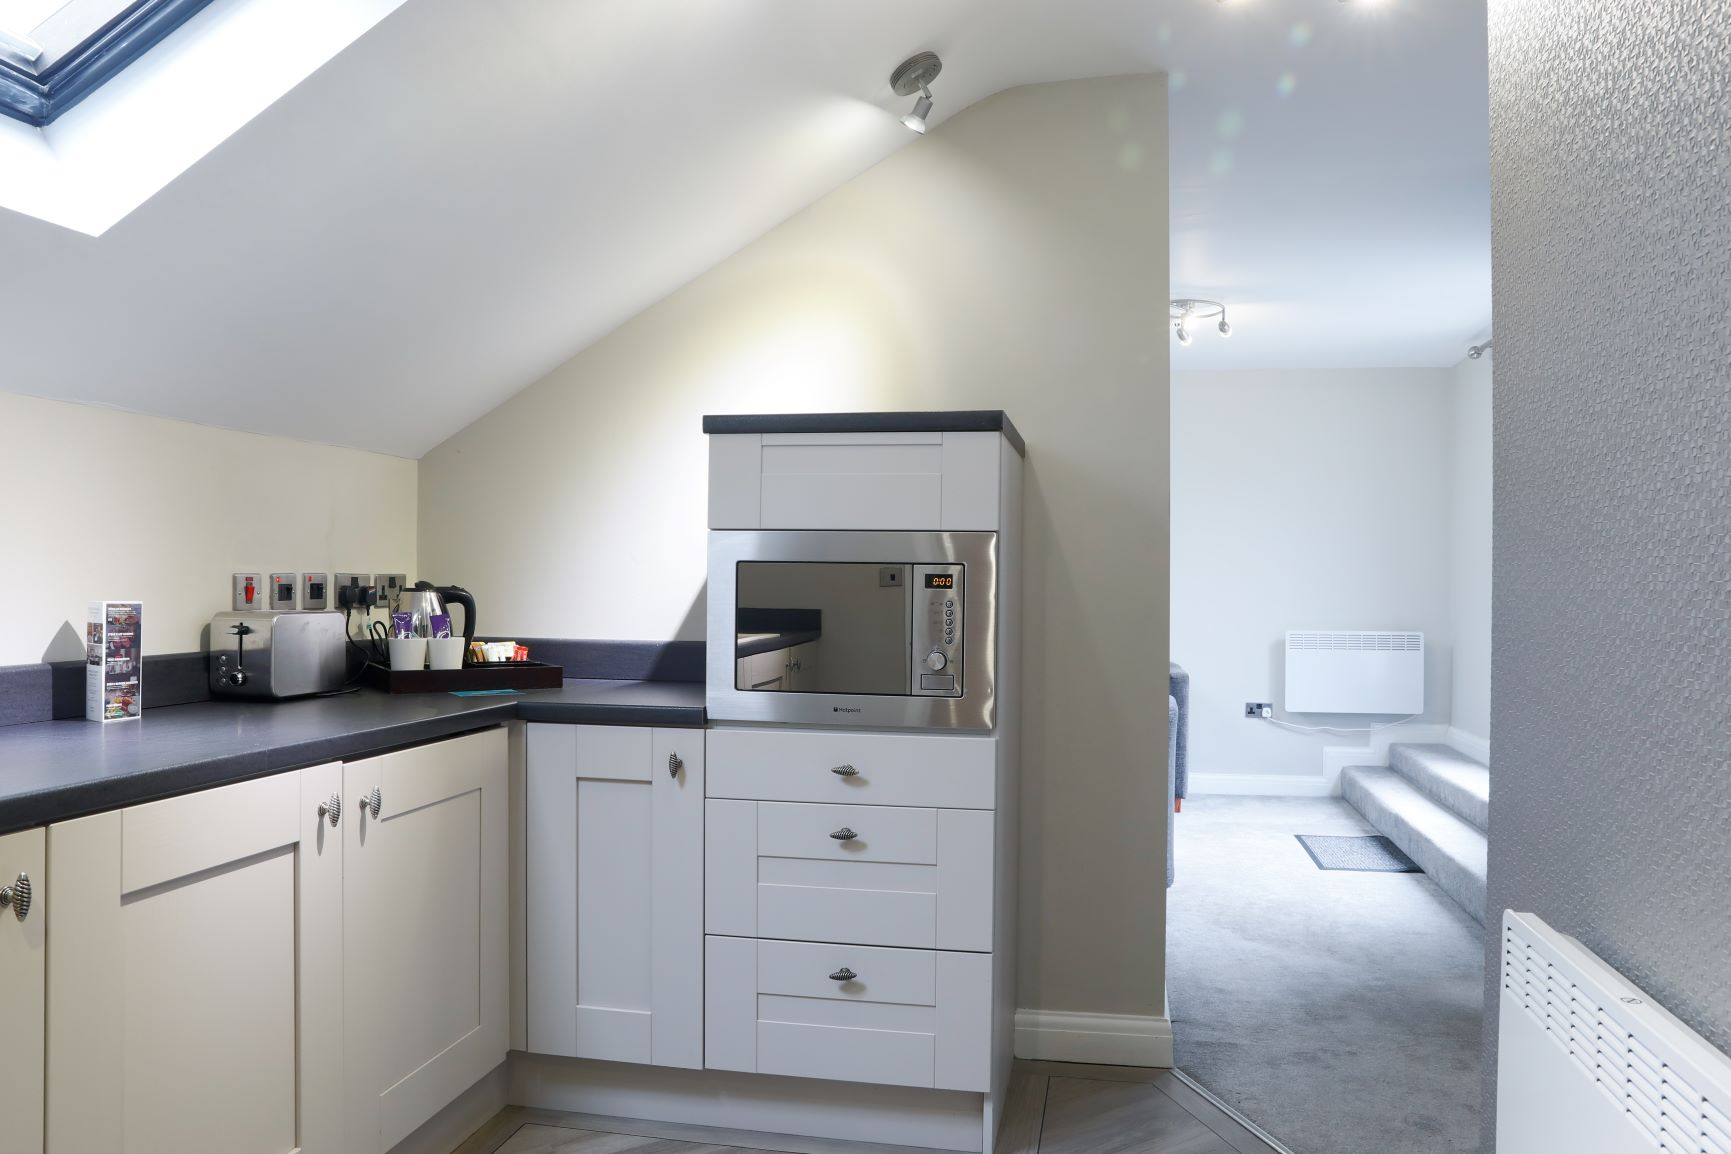 Kitchen at Richmond Liverpool Apartments, Centre, Liverpool - Citybase Apartments